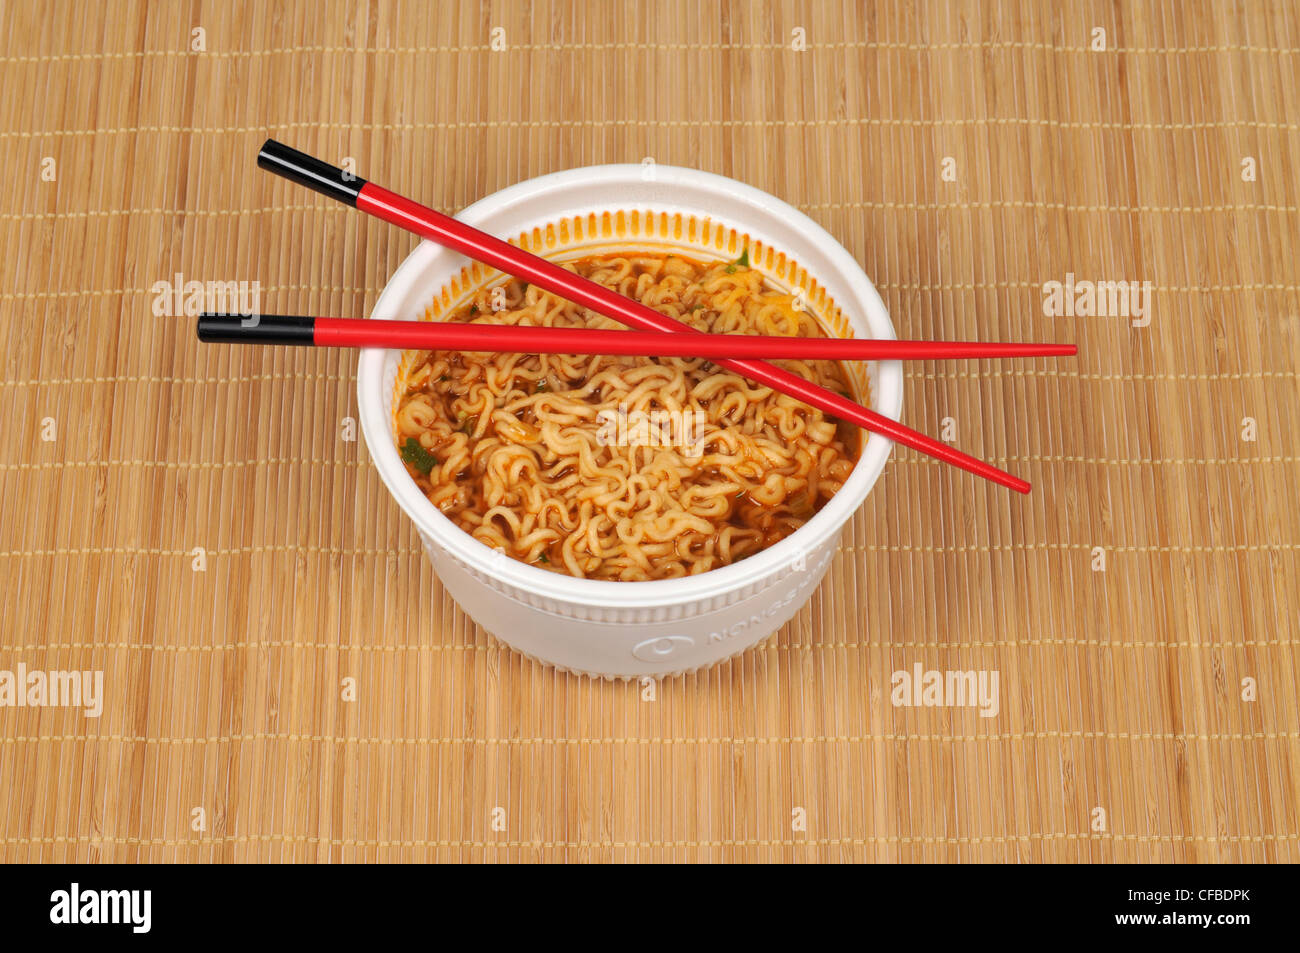 Bowl of oriental noodles with chopsticks on bamboo mat - Stock Image